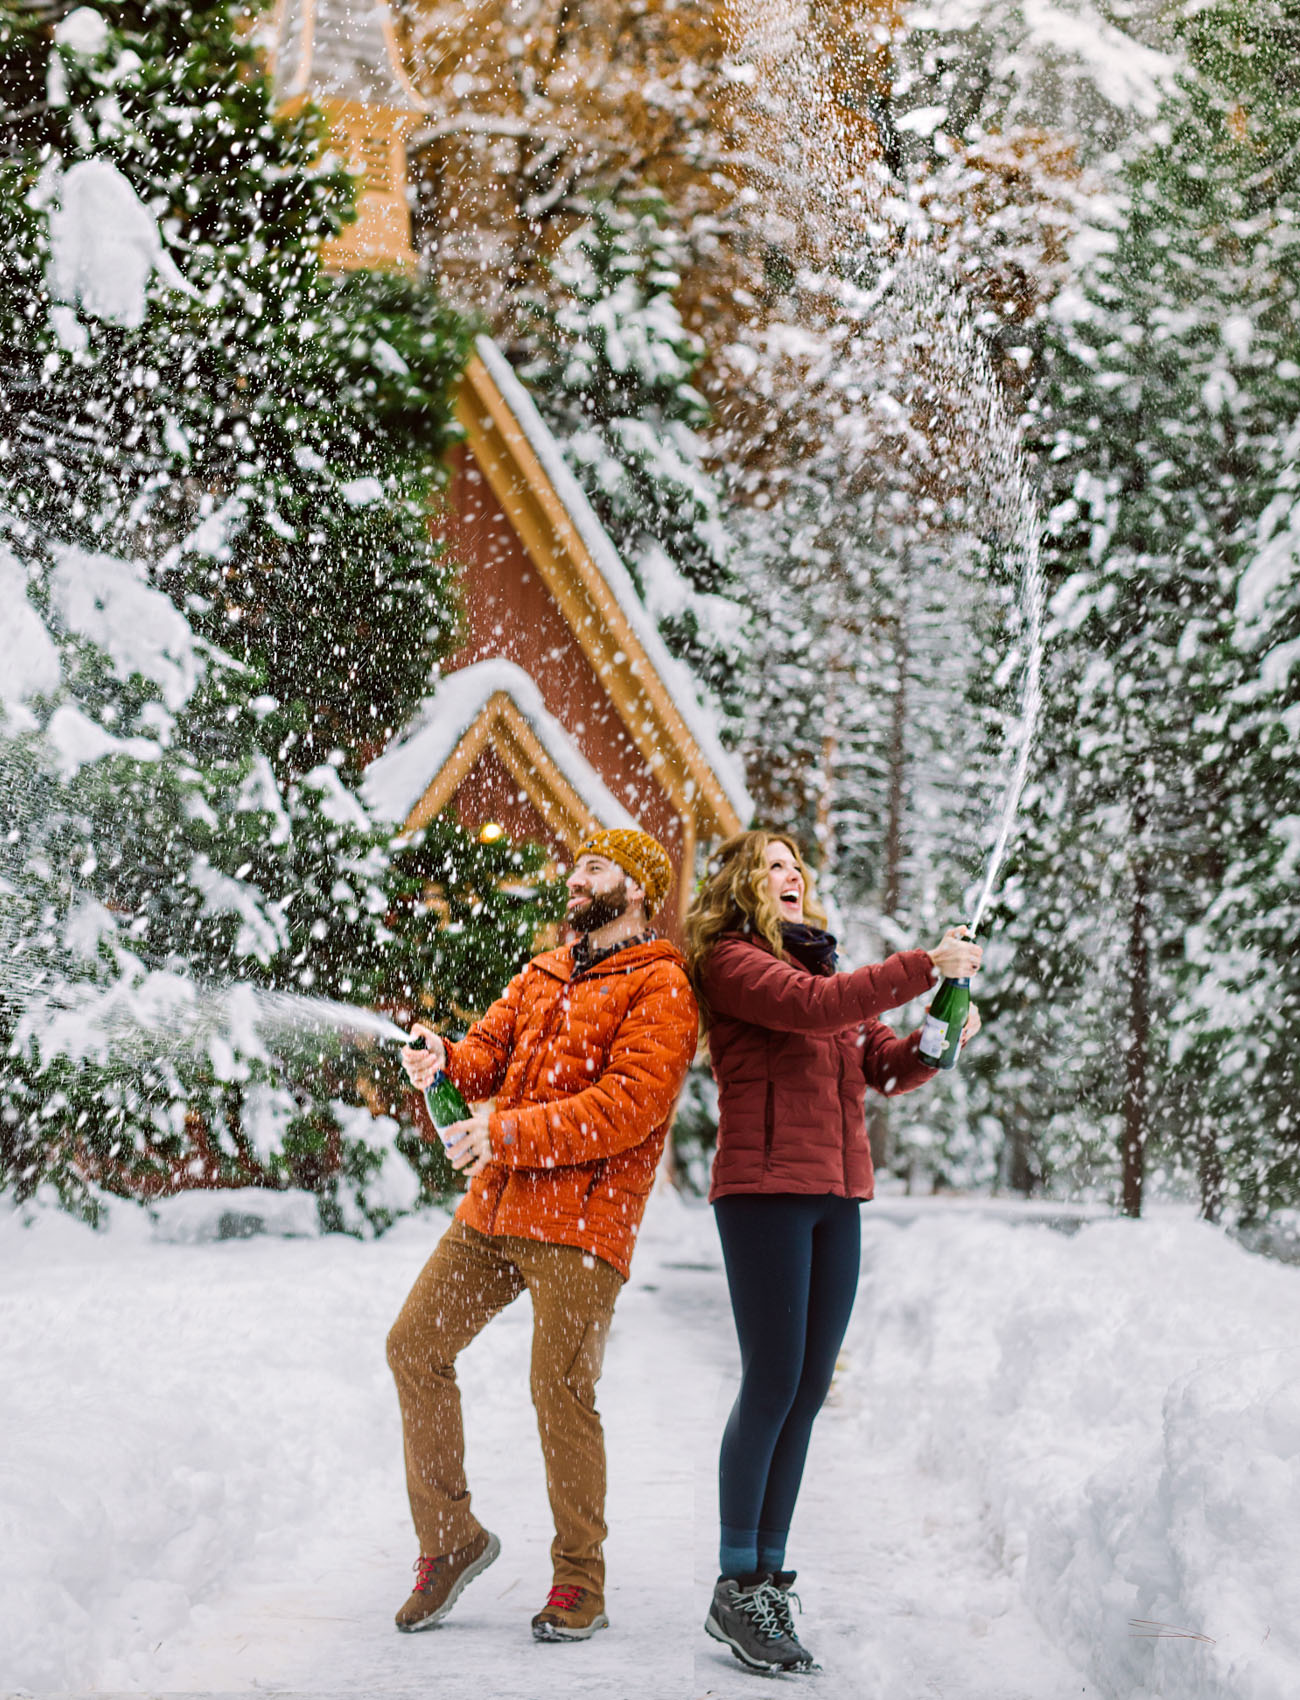 Yosemite Winter Wonderland Elopement